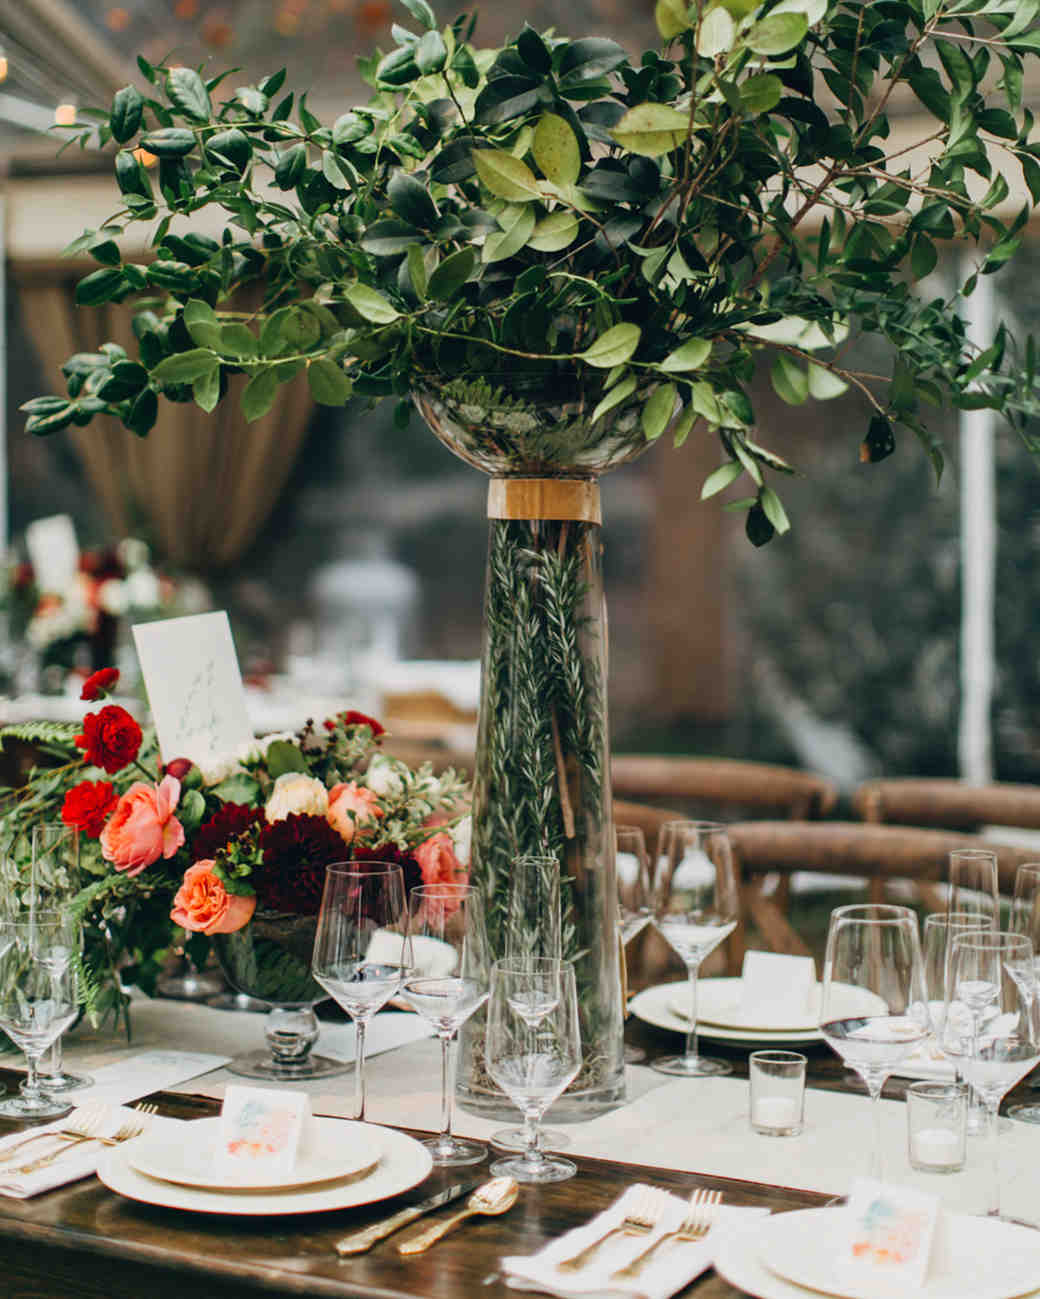 Flowers For Wedding Table Centerpieces: Affordable Wedding Centerpieces That Don't Look Cheap